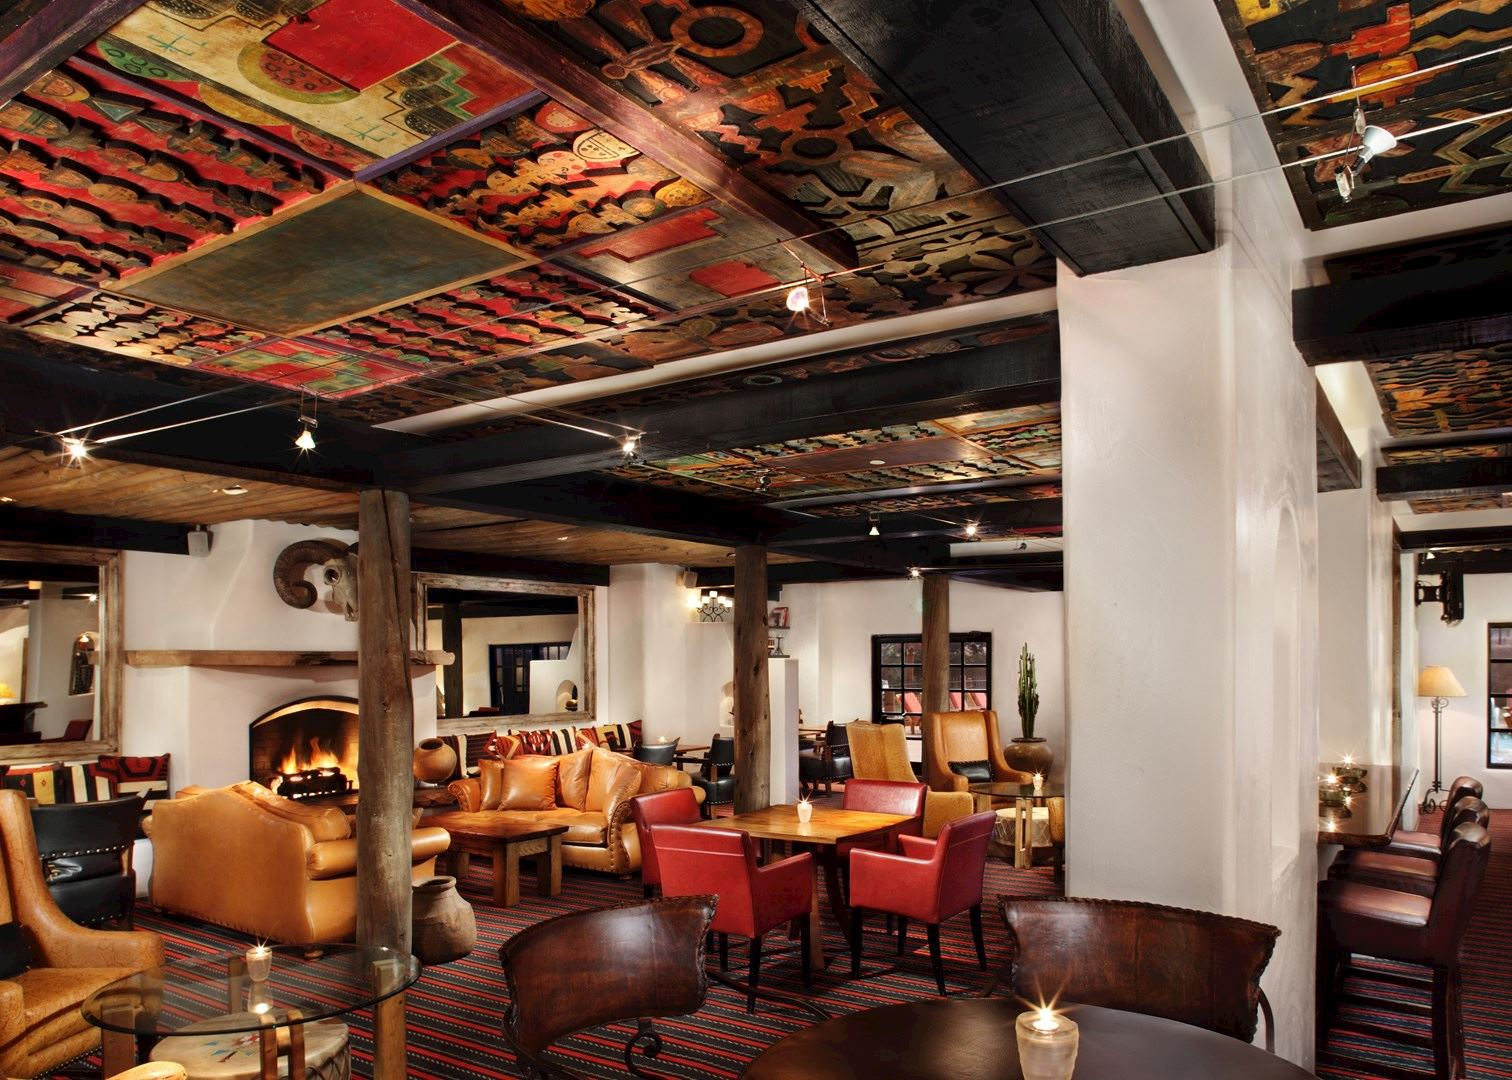 Inn and spa at loretto hotels in santa fe audley travel The living room night club bethpage ny